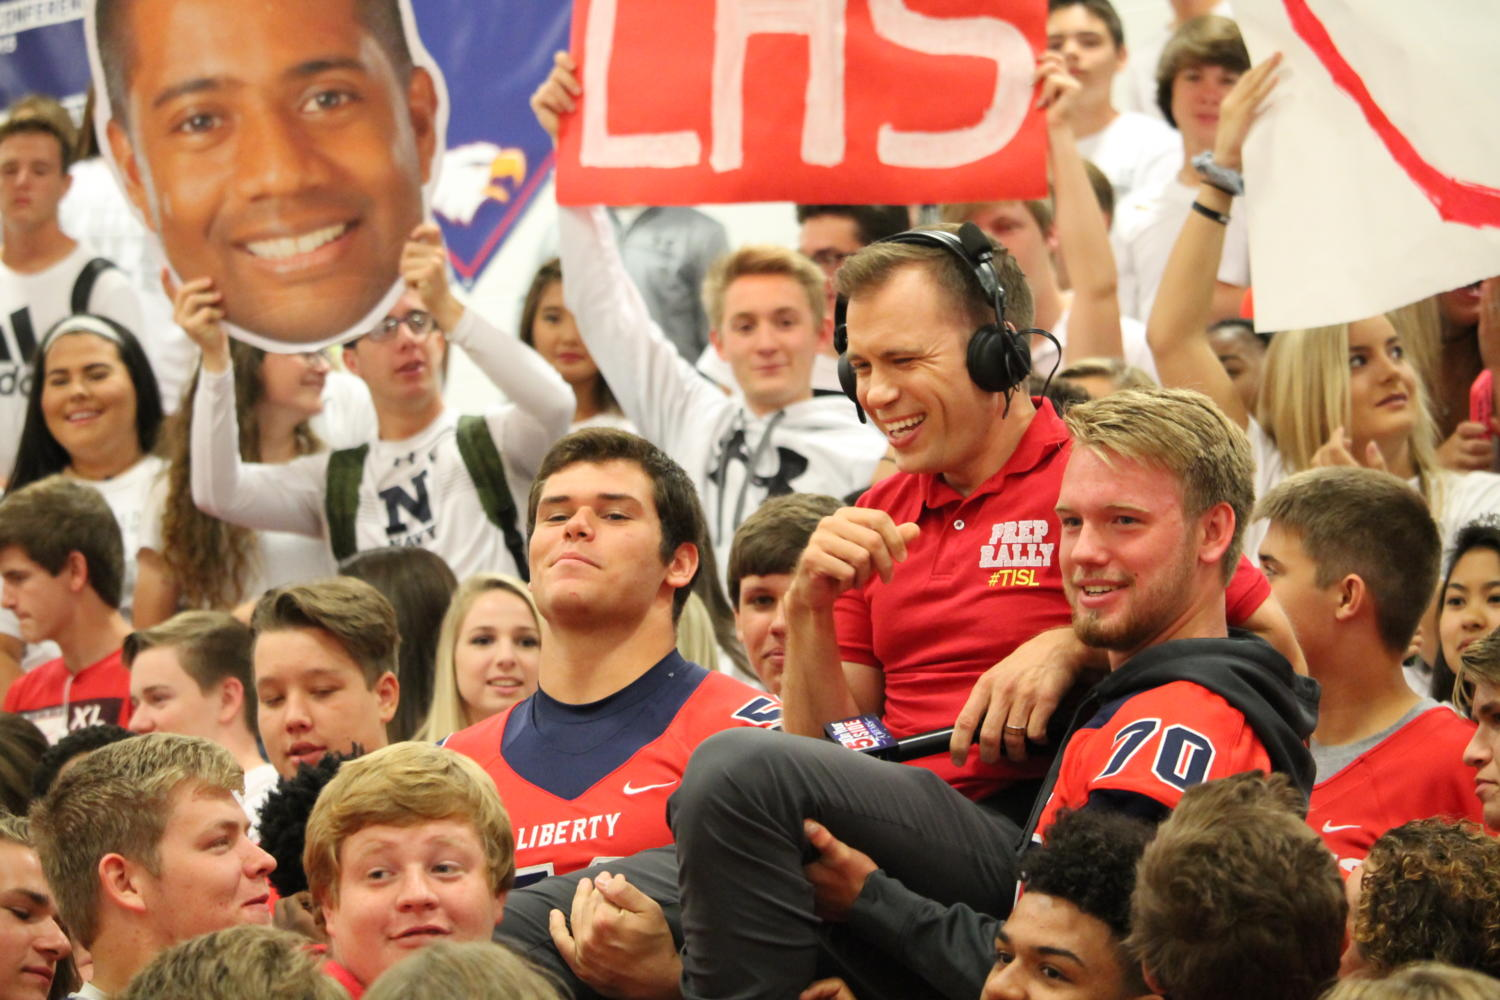 Seniors+Brandon+Wortman+and+Justin+Holmes+carry+KSDK+reporter+Ryan+Dean+during+the+prep+assembly.